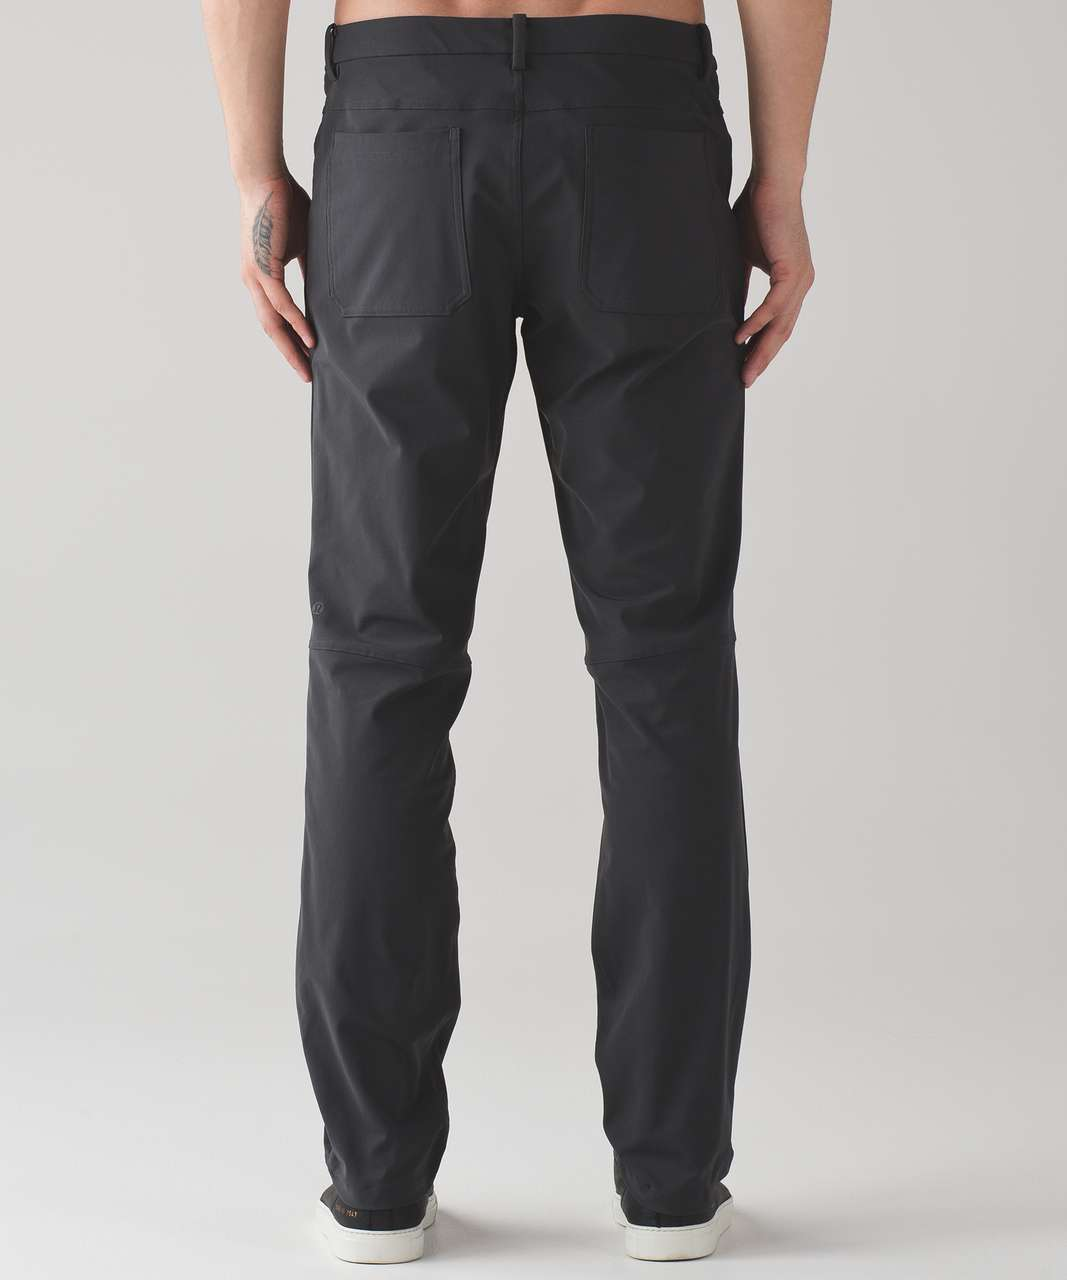 "Lululemon ABC Pant Classic 37"" - Deep Coal"